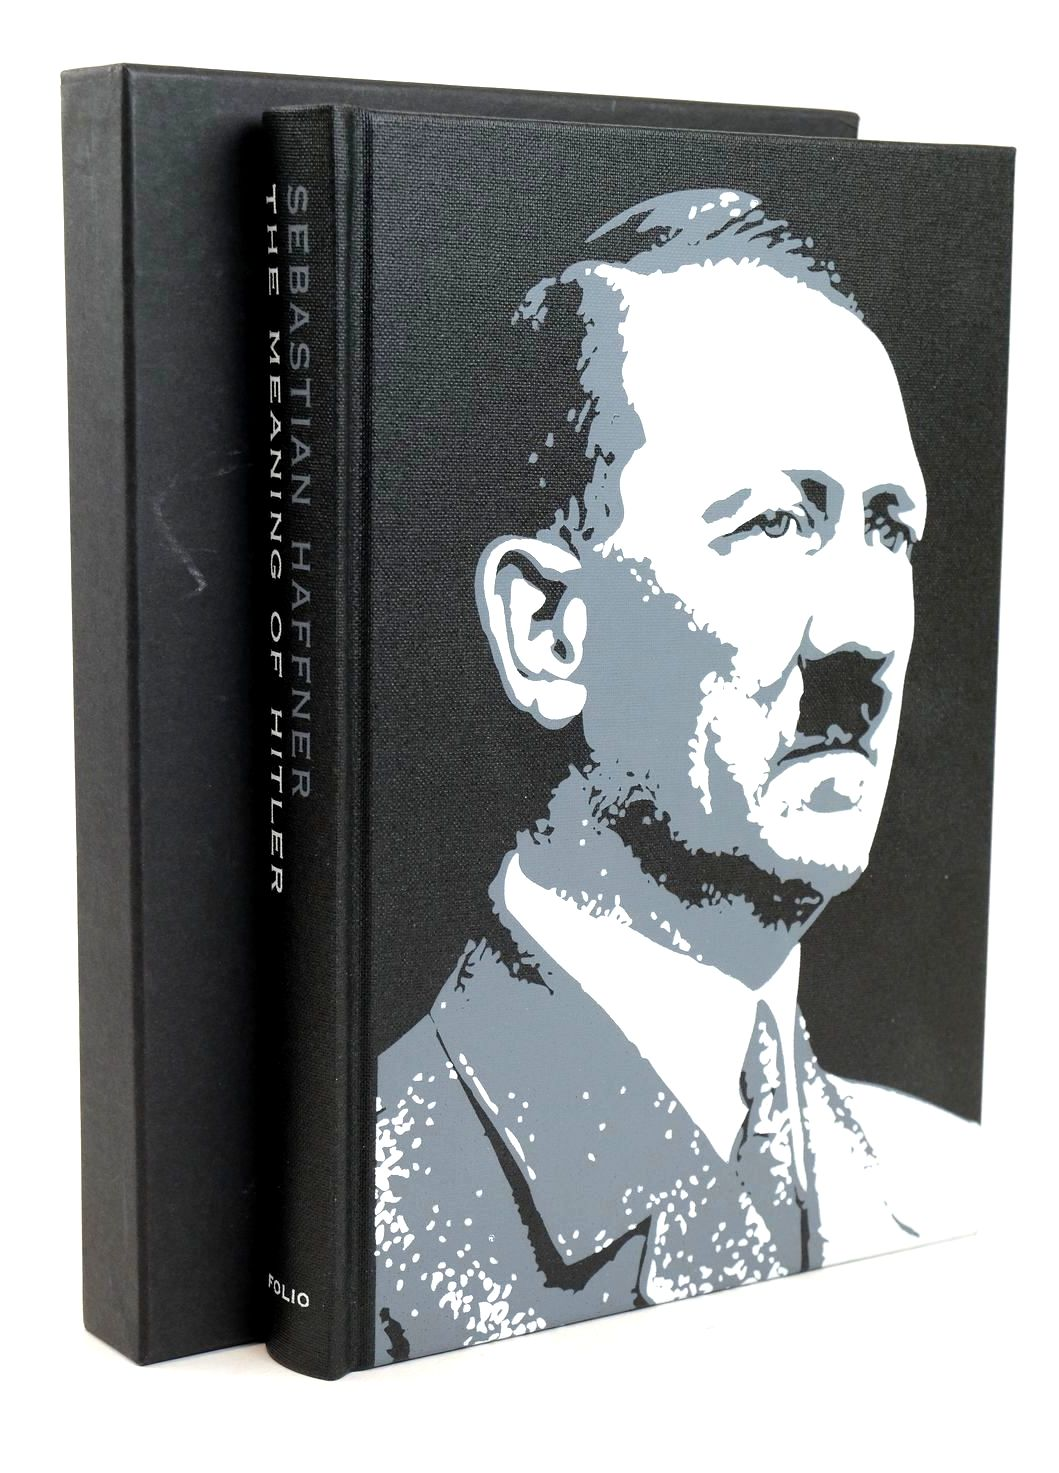 Photo of THE MEANING OF HITLER written by Haffner, Sebastian published by Folio Society (STOCK CODE: 1319008)  for sale by Stella & Rose's Books